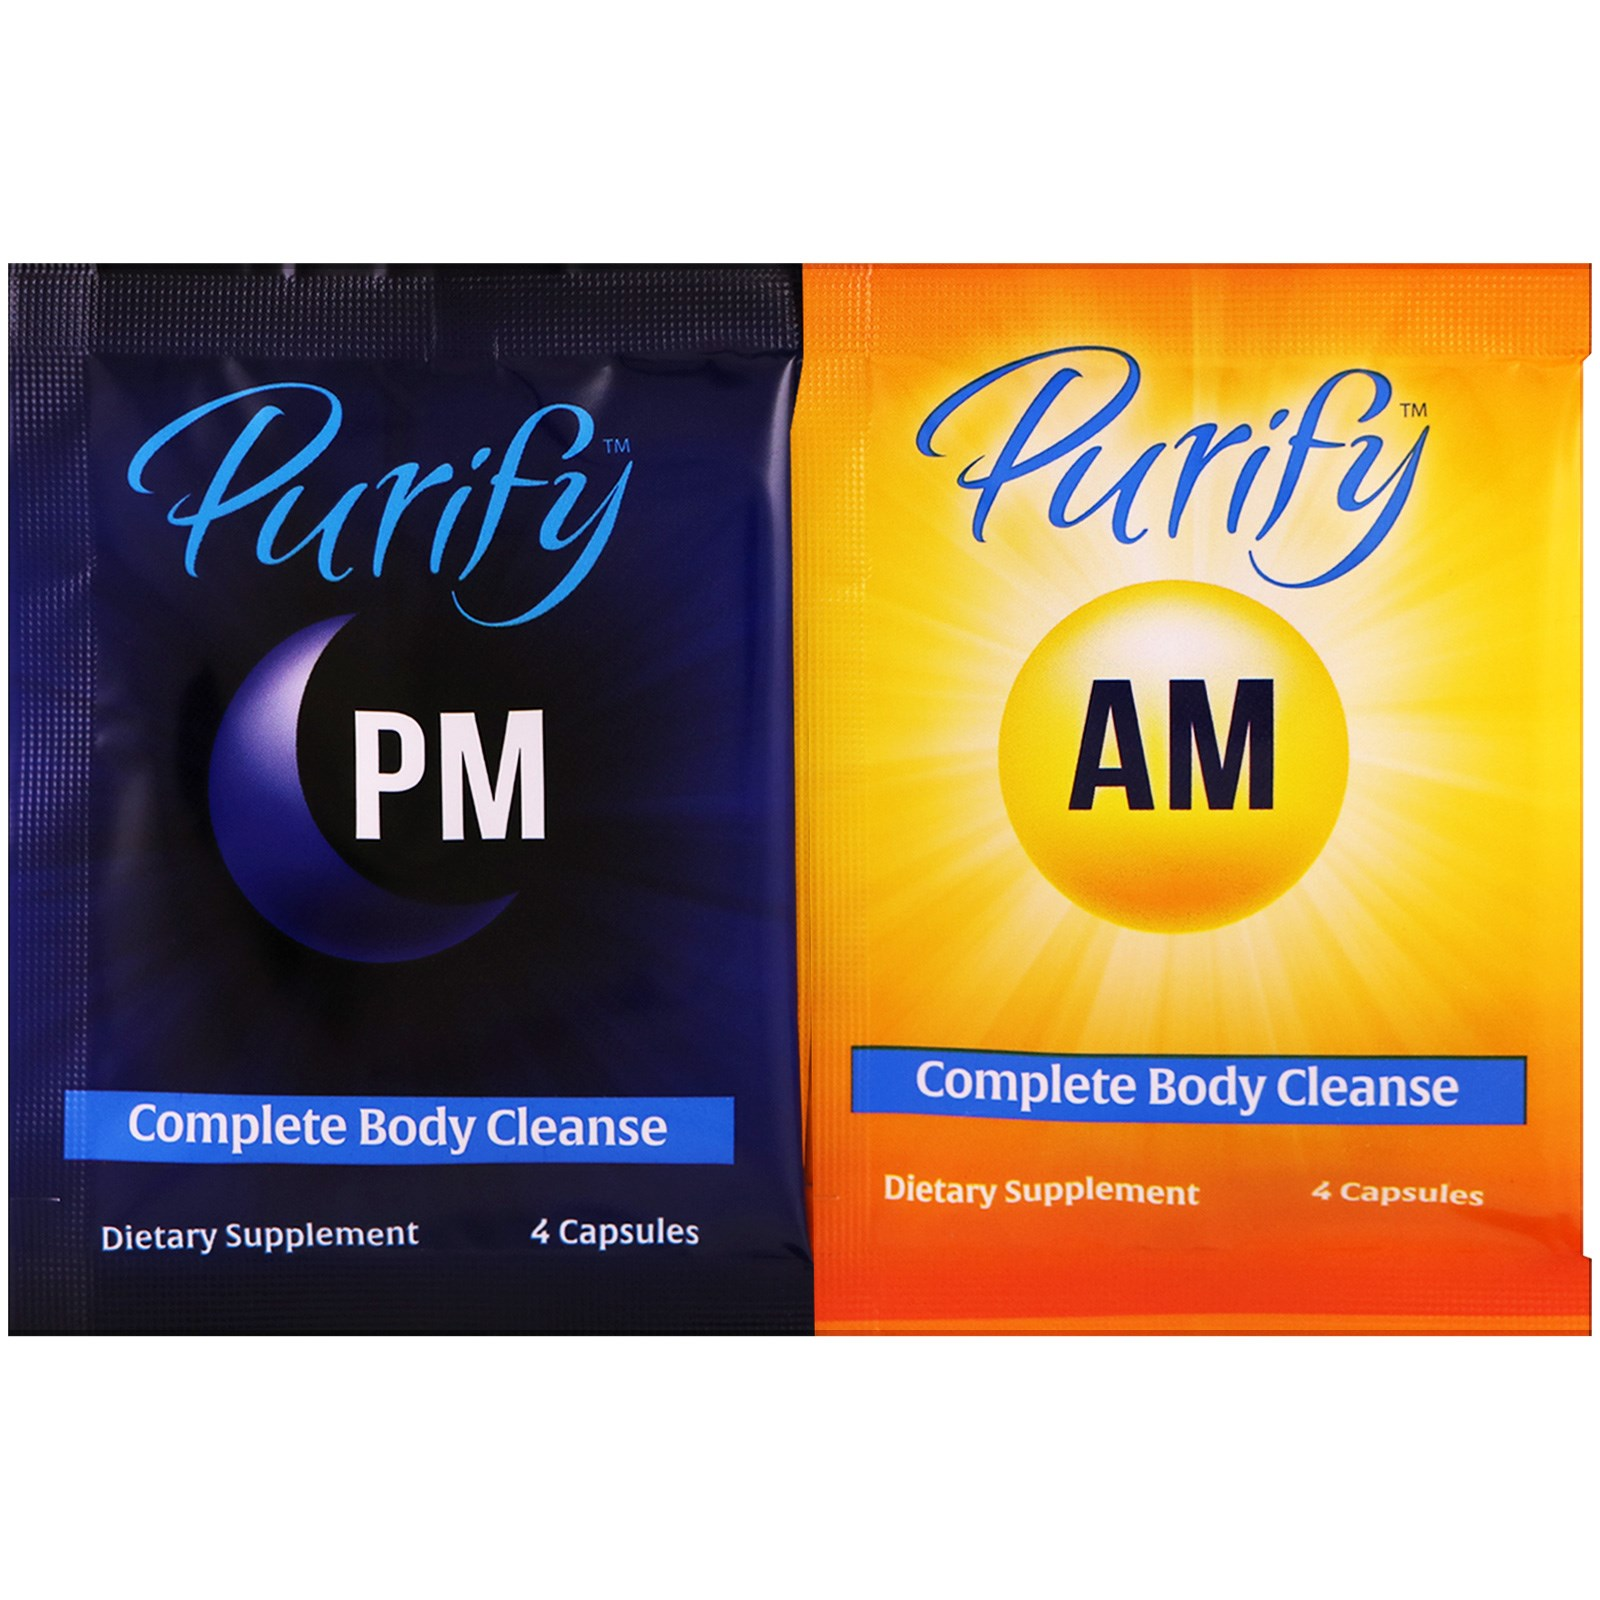 Enzymedica, Purify, 10 Day Complete Body Cleanse, AM 10 Packs / PM - 10  Packs